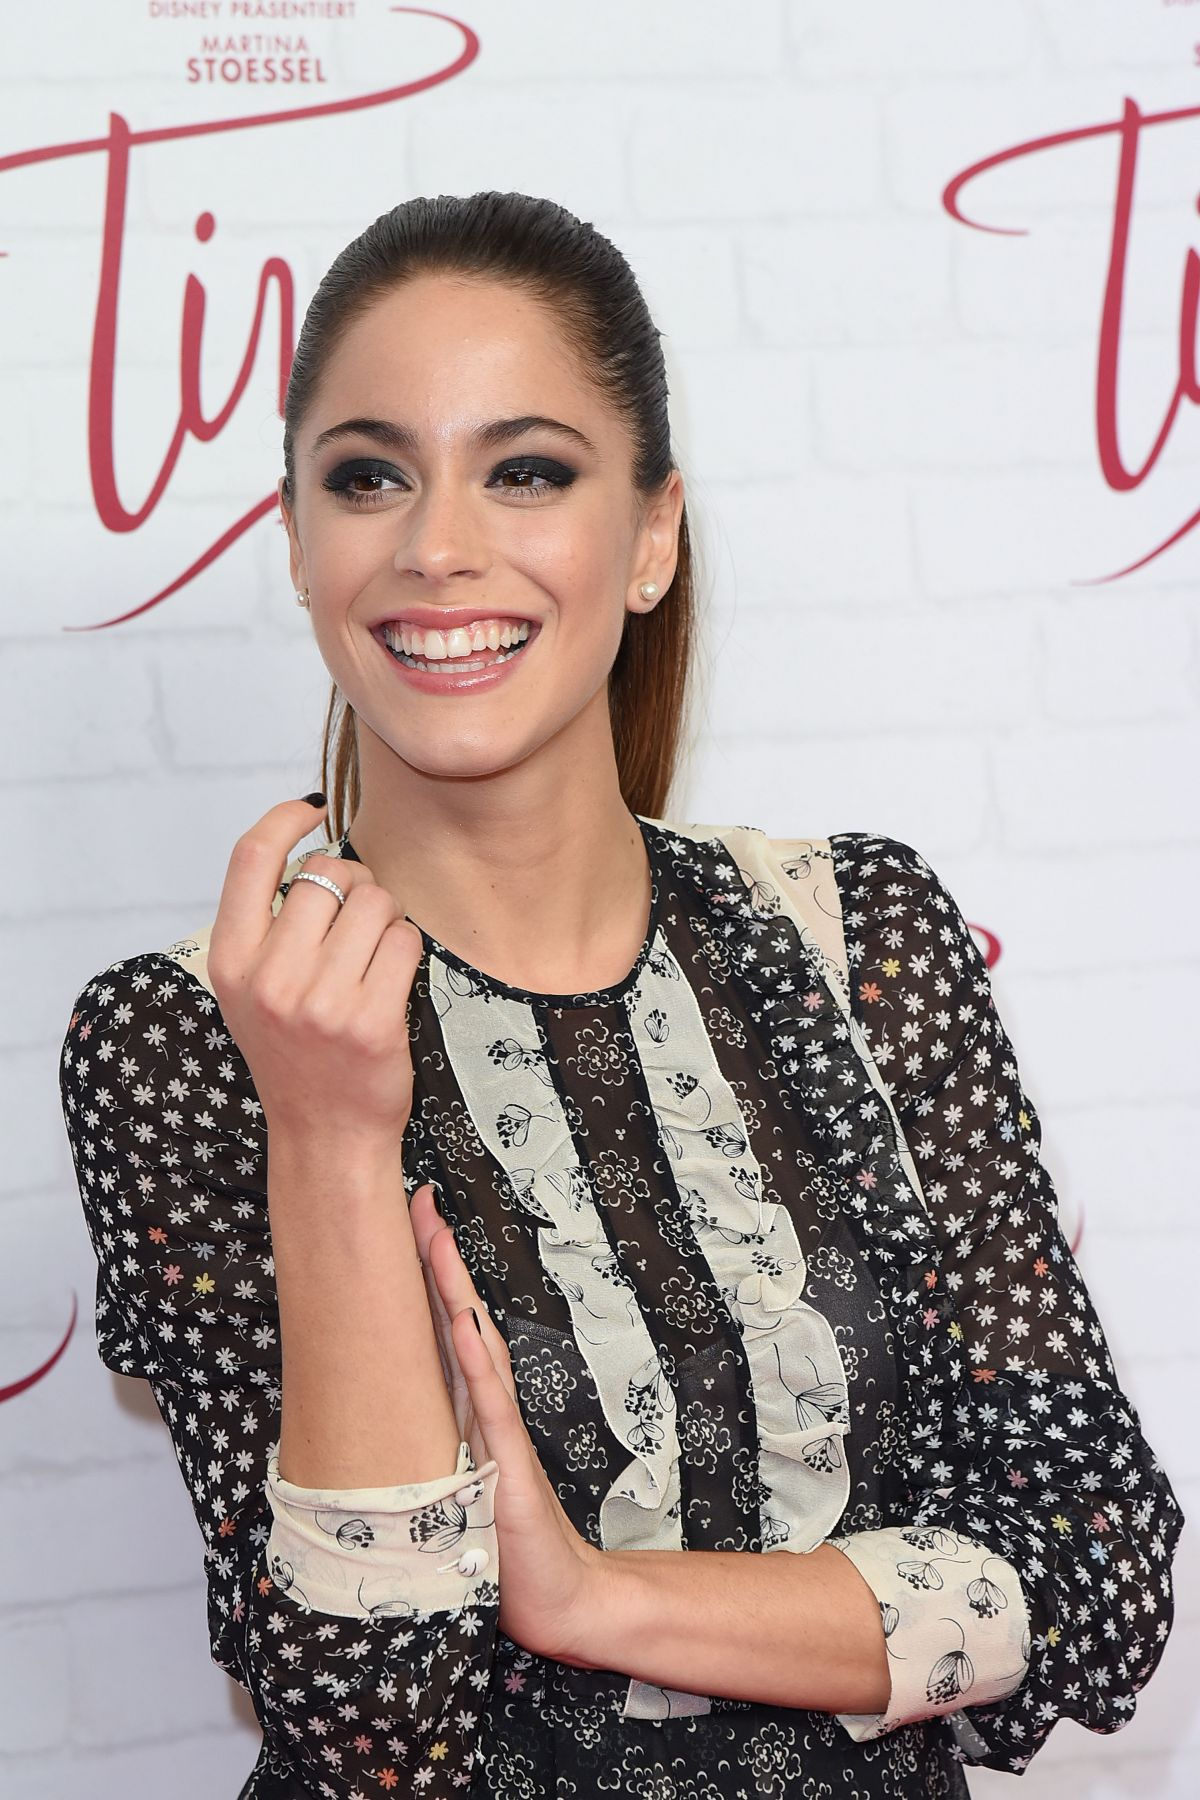 Images Martina Stoessel nude (17 foto and video), Pussy, Fappening, Instagram, underwear 2006